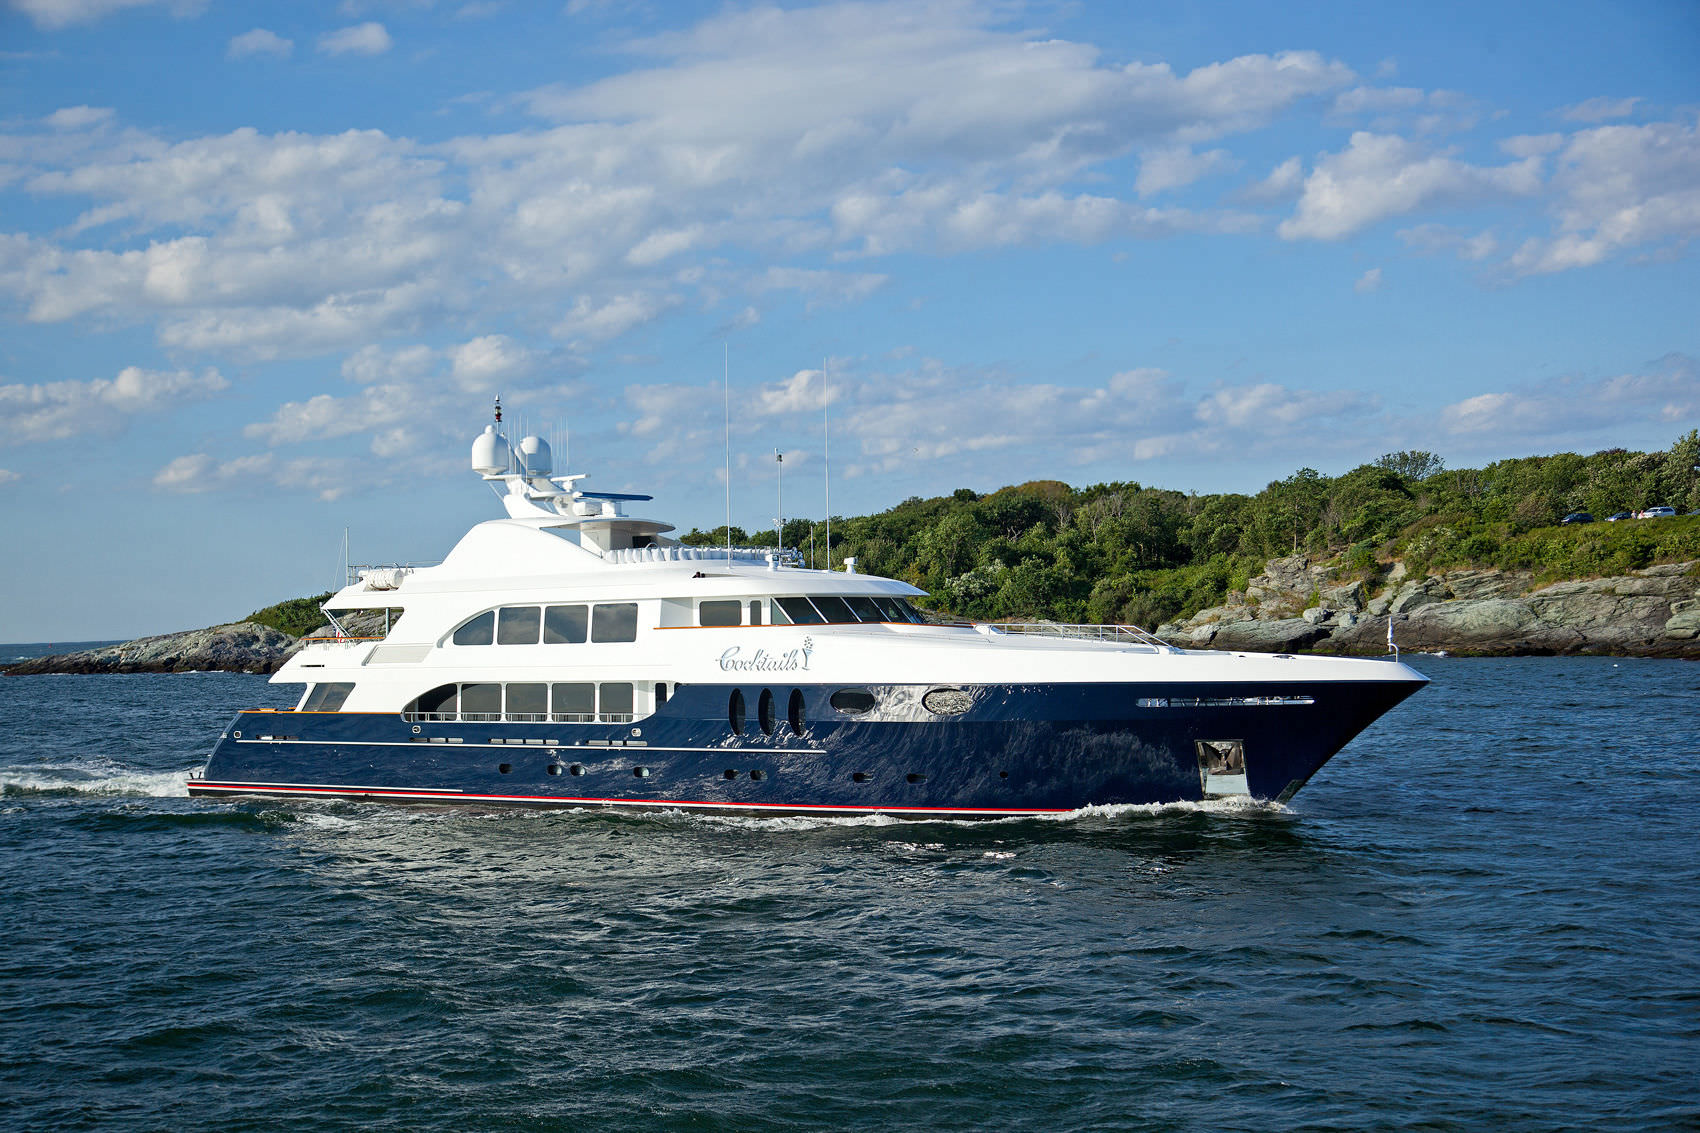 Yacht COCKTAILS - By Trinity Yachts - Profile